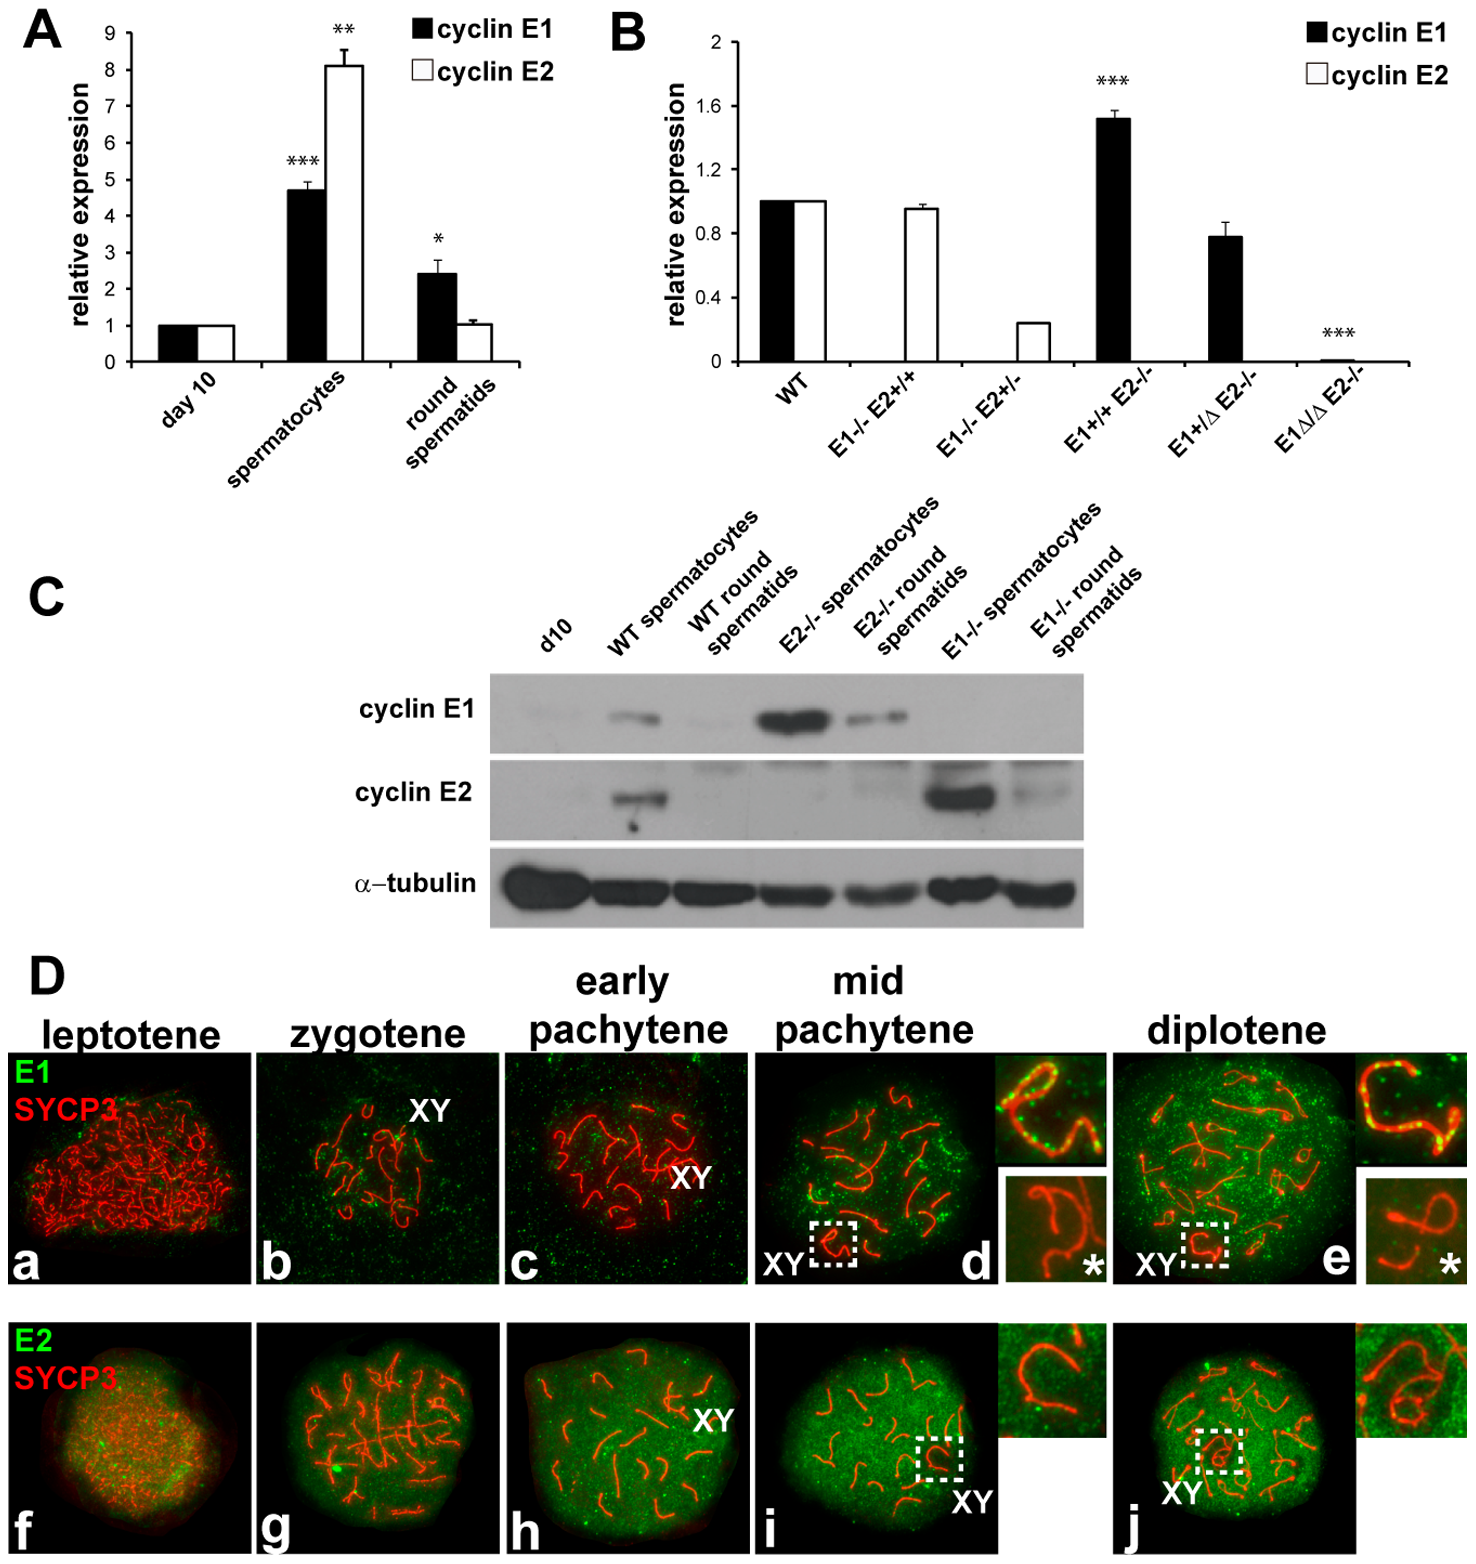 Cyclin E1 and E2 have differential mRNA and protein expression patterns during spermatogenesis.